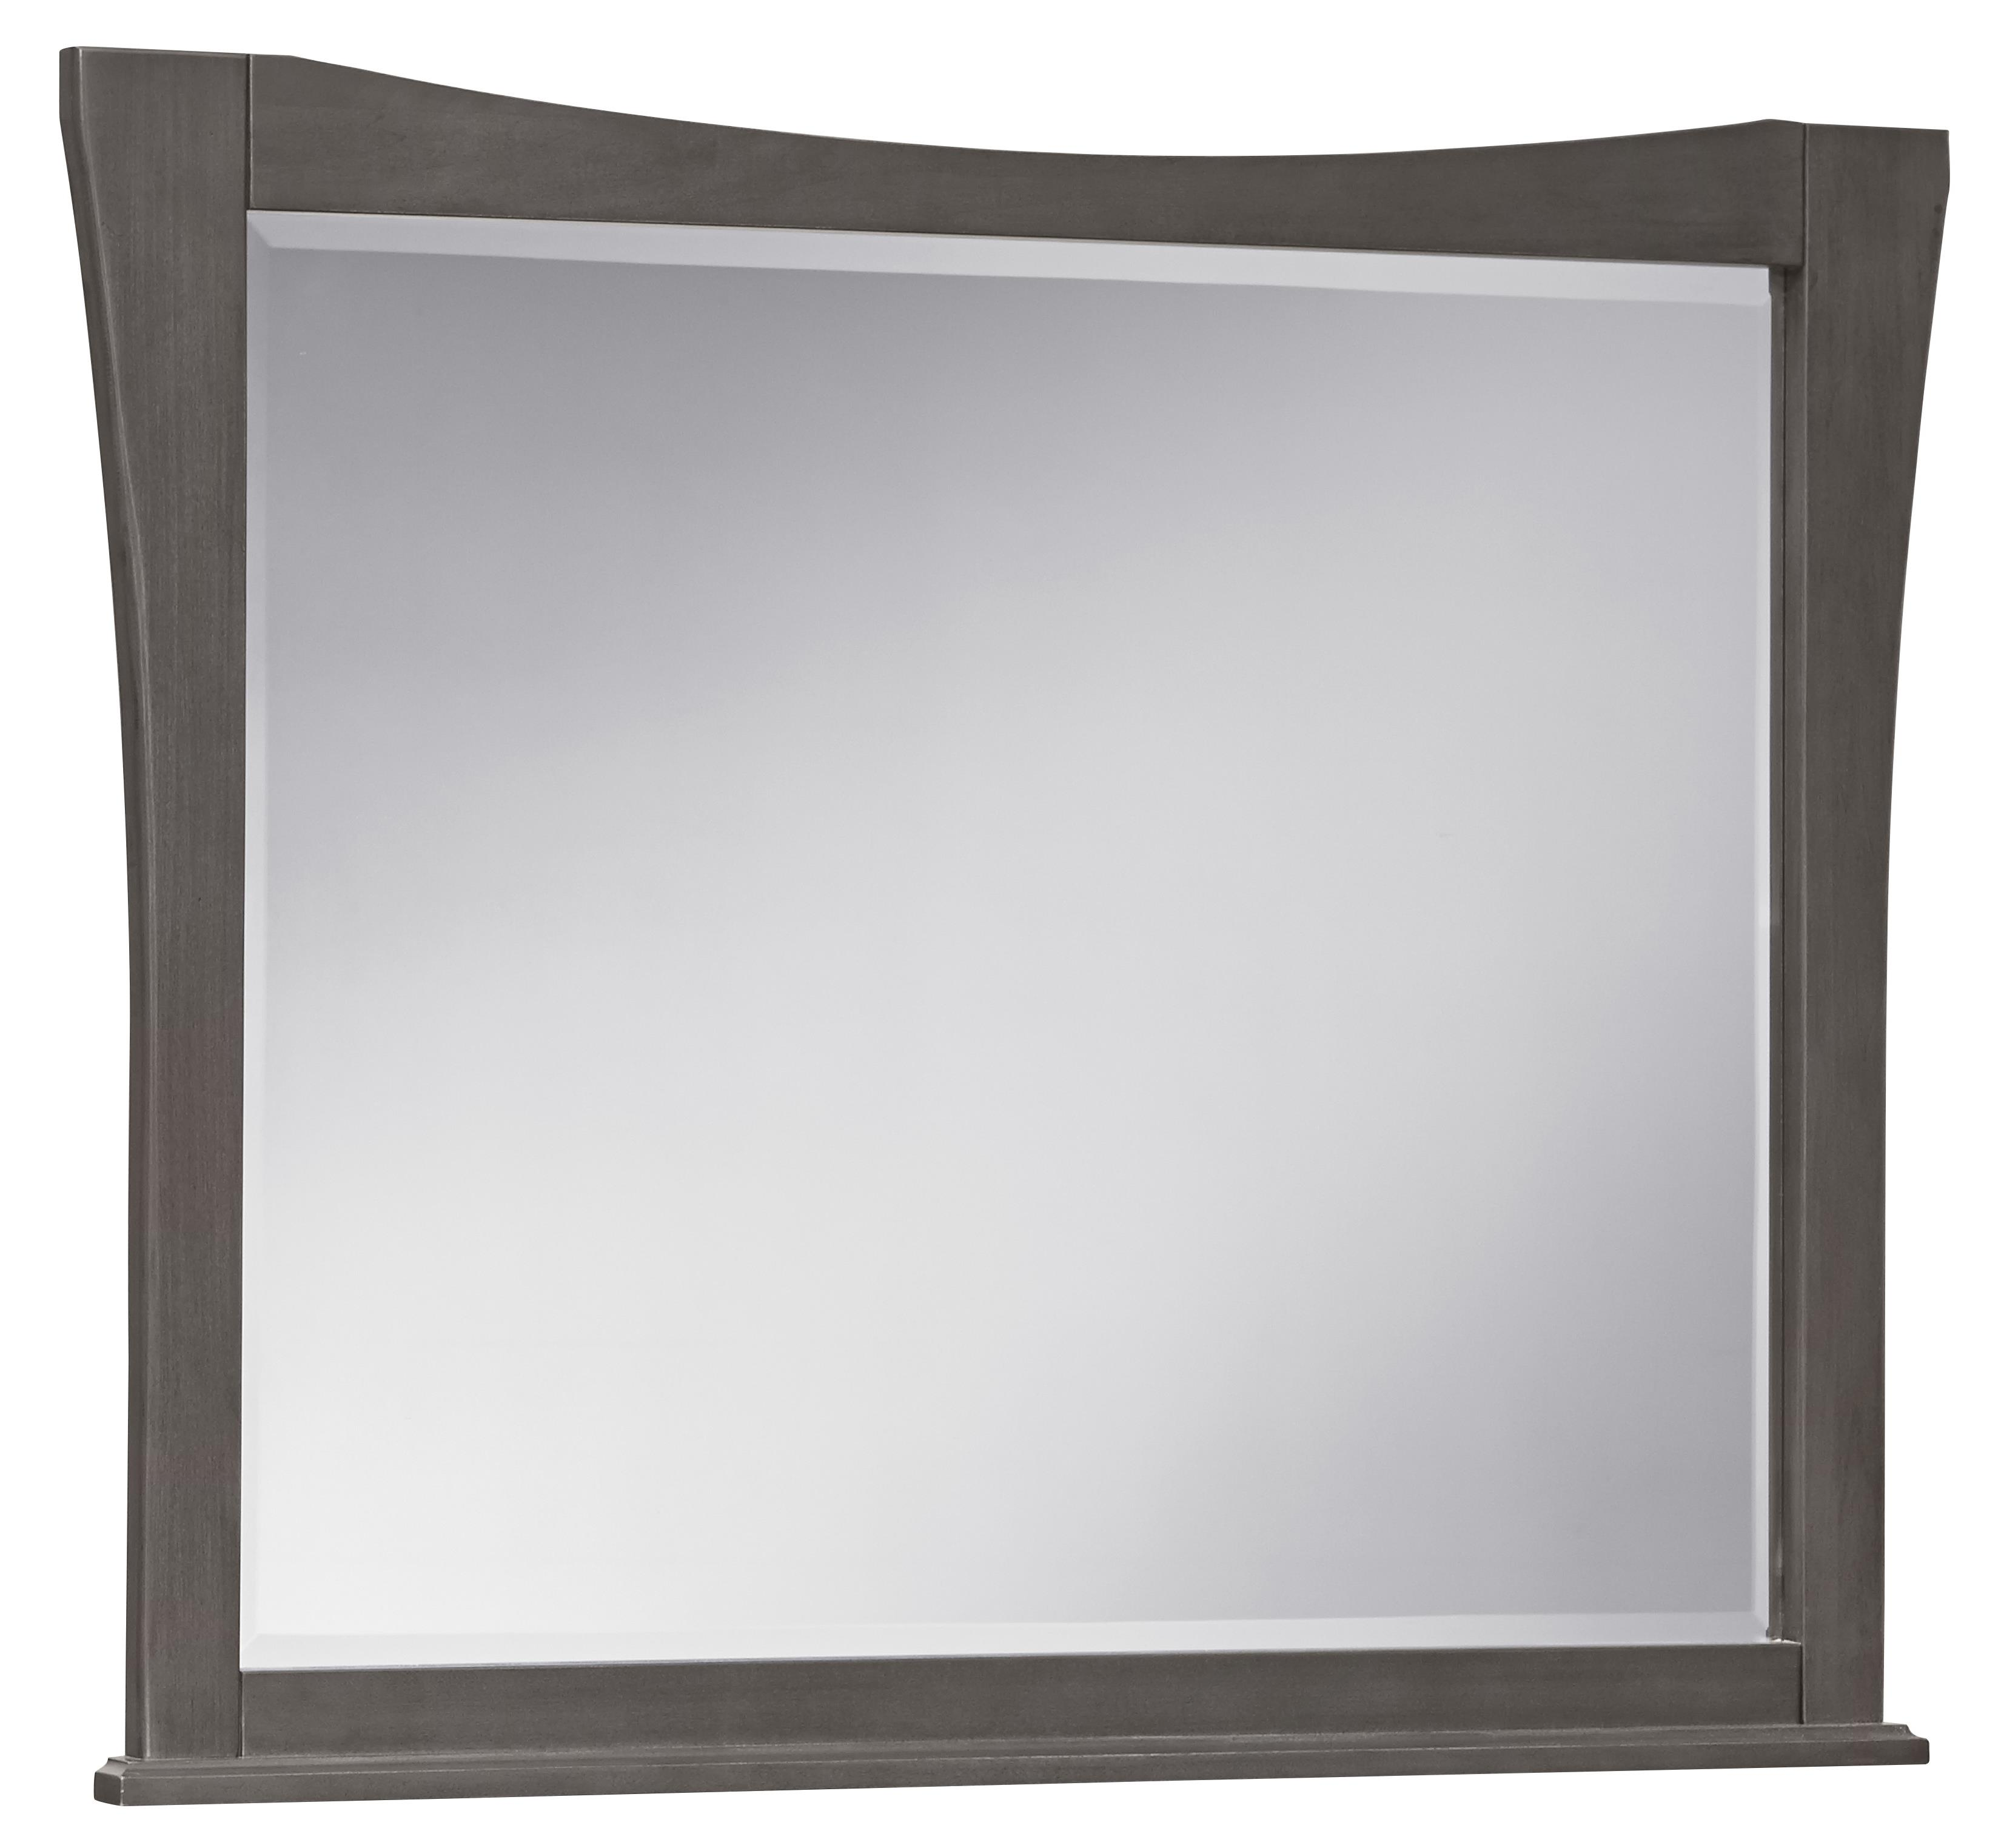 Vaughan Bassett Commentary Large Wing Mirror - Item Number: 394-446